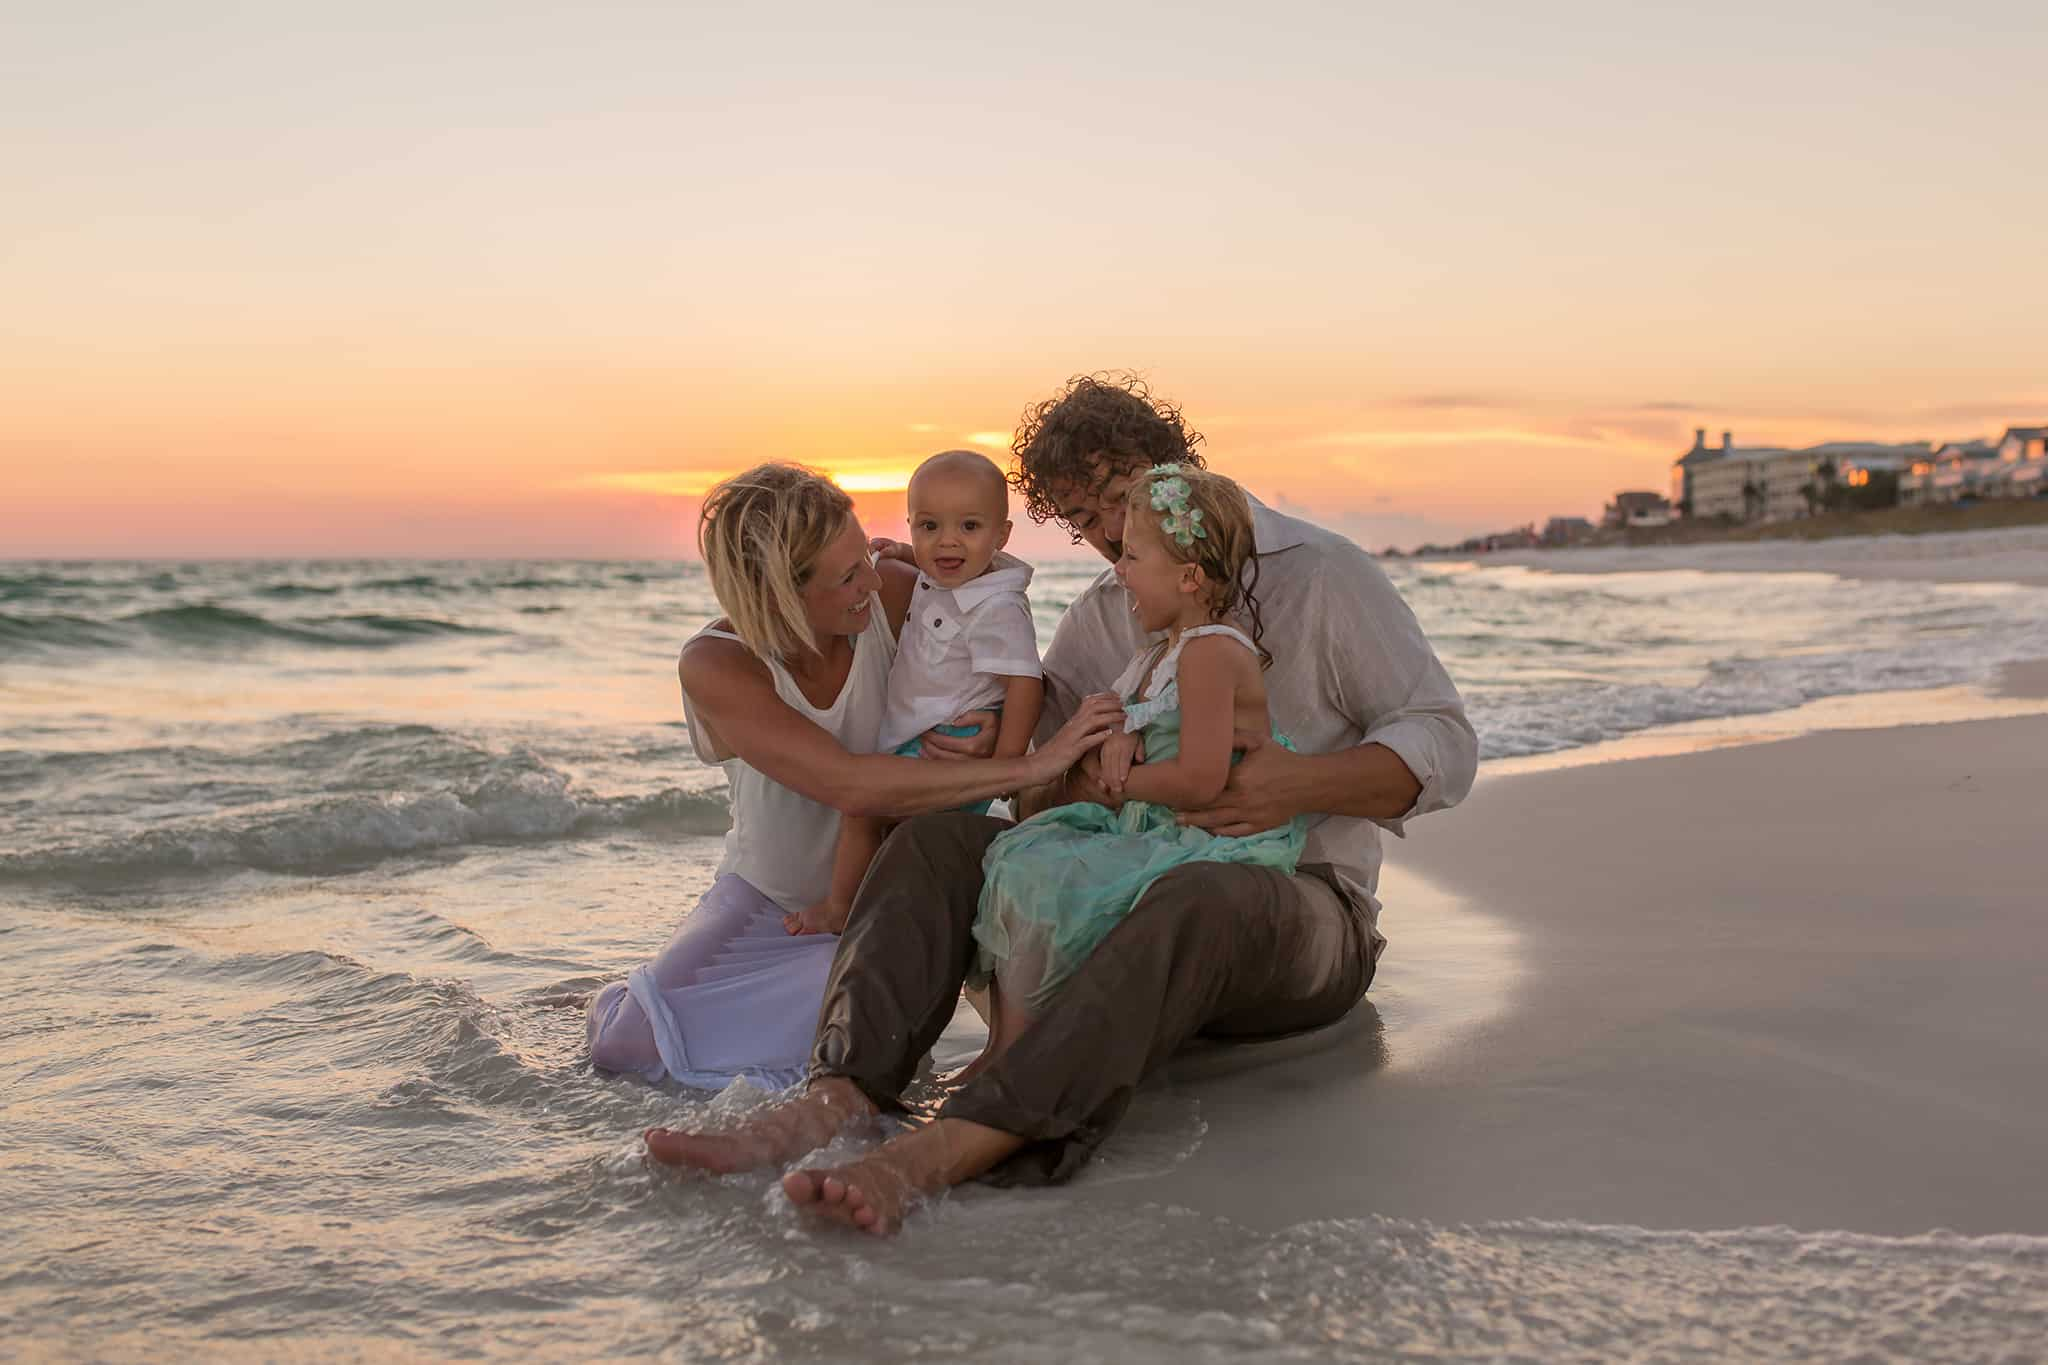 Precious Moments Family Photography in Panama City Beach